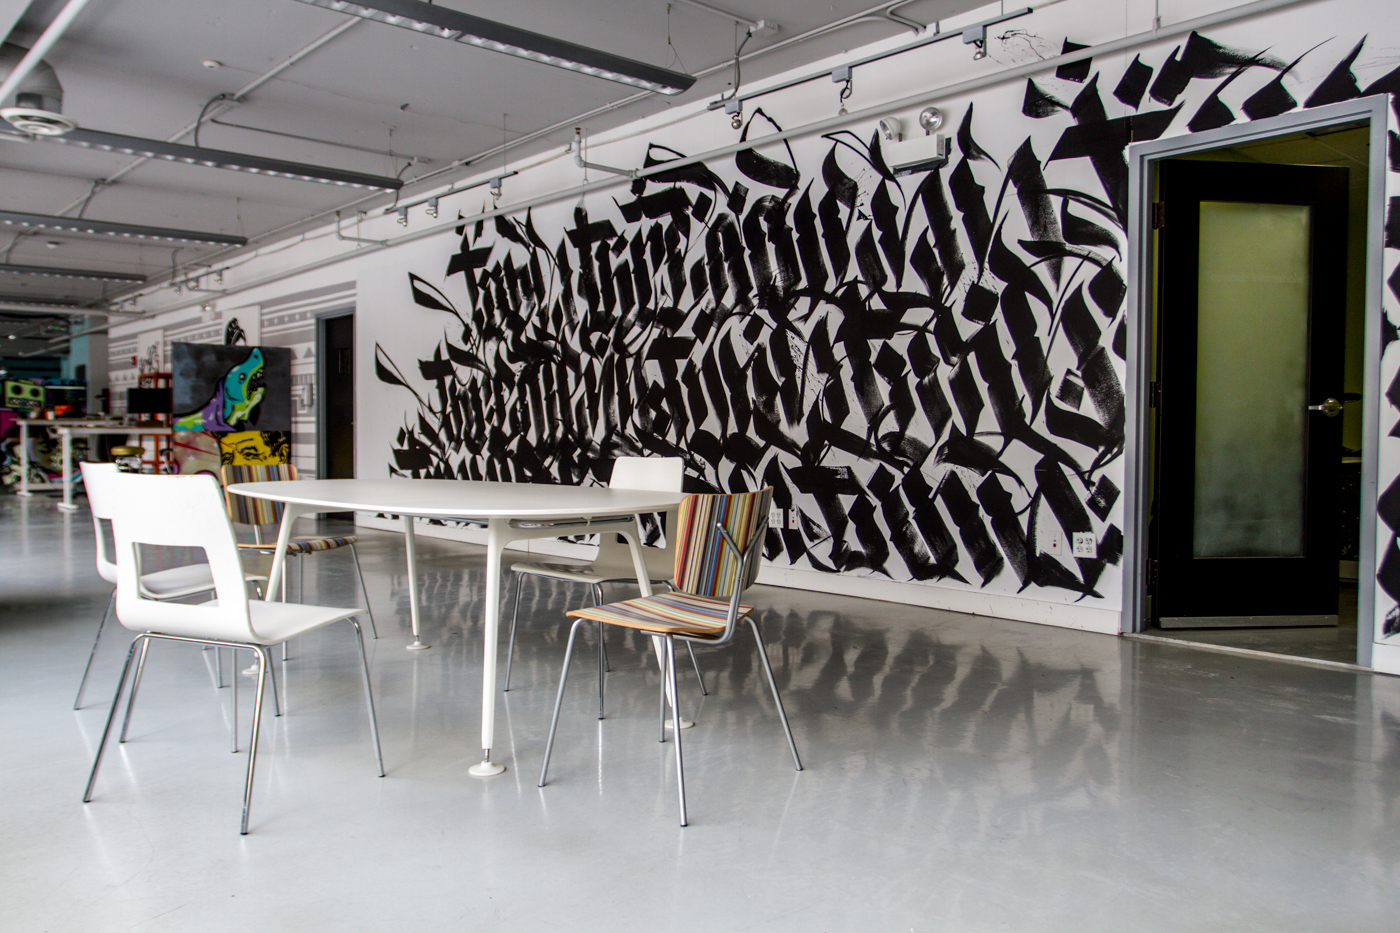 Commissioned mural at the Threadless Headquarters, Photo courtesy of Behind The Tees blog